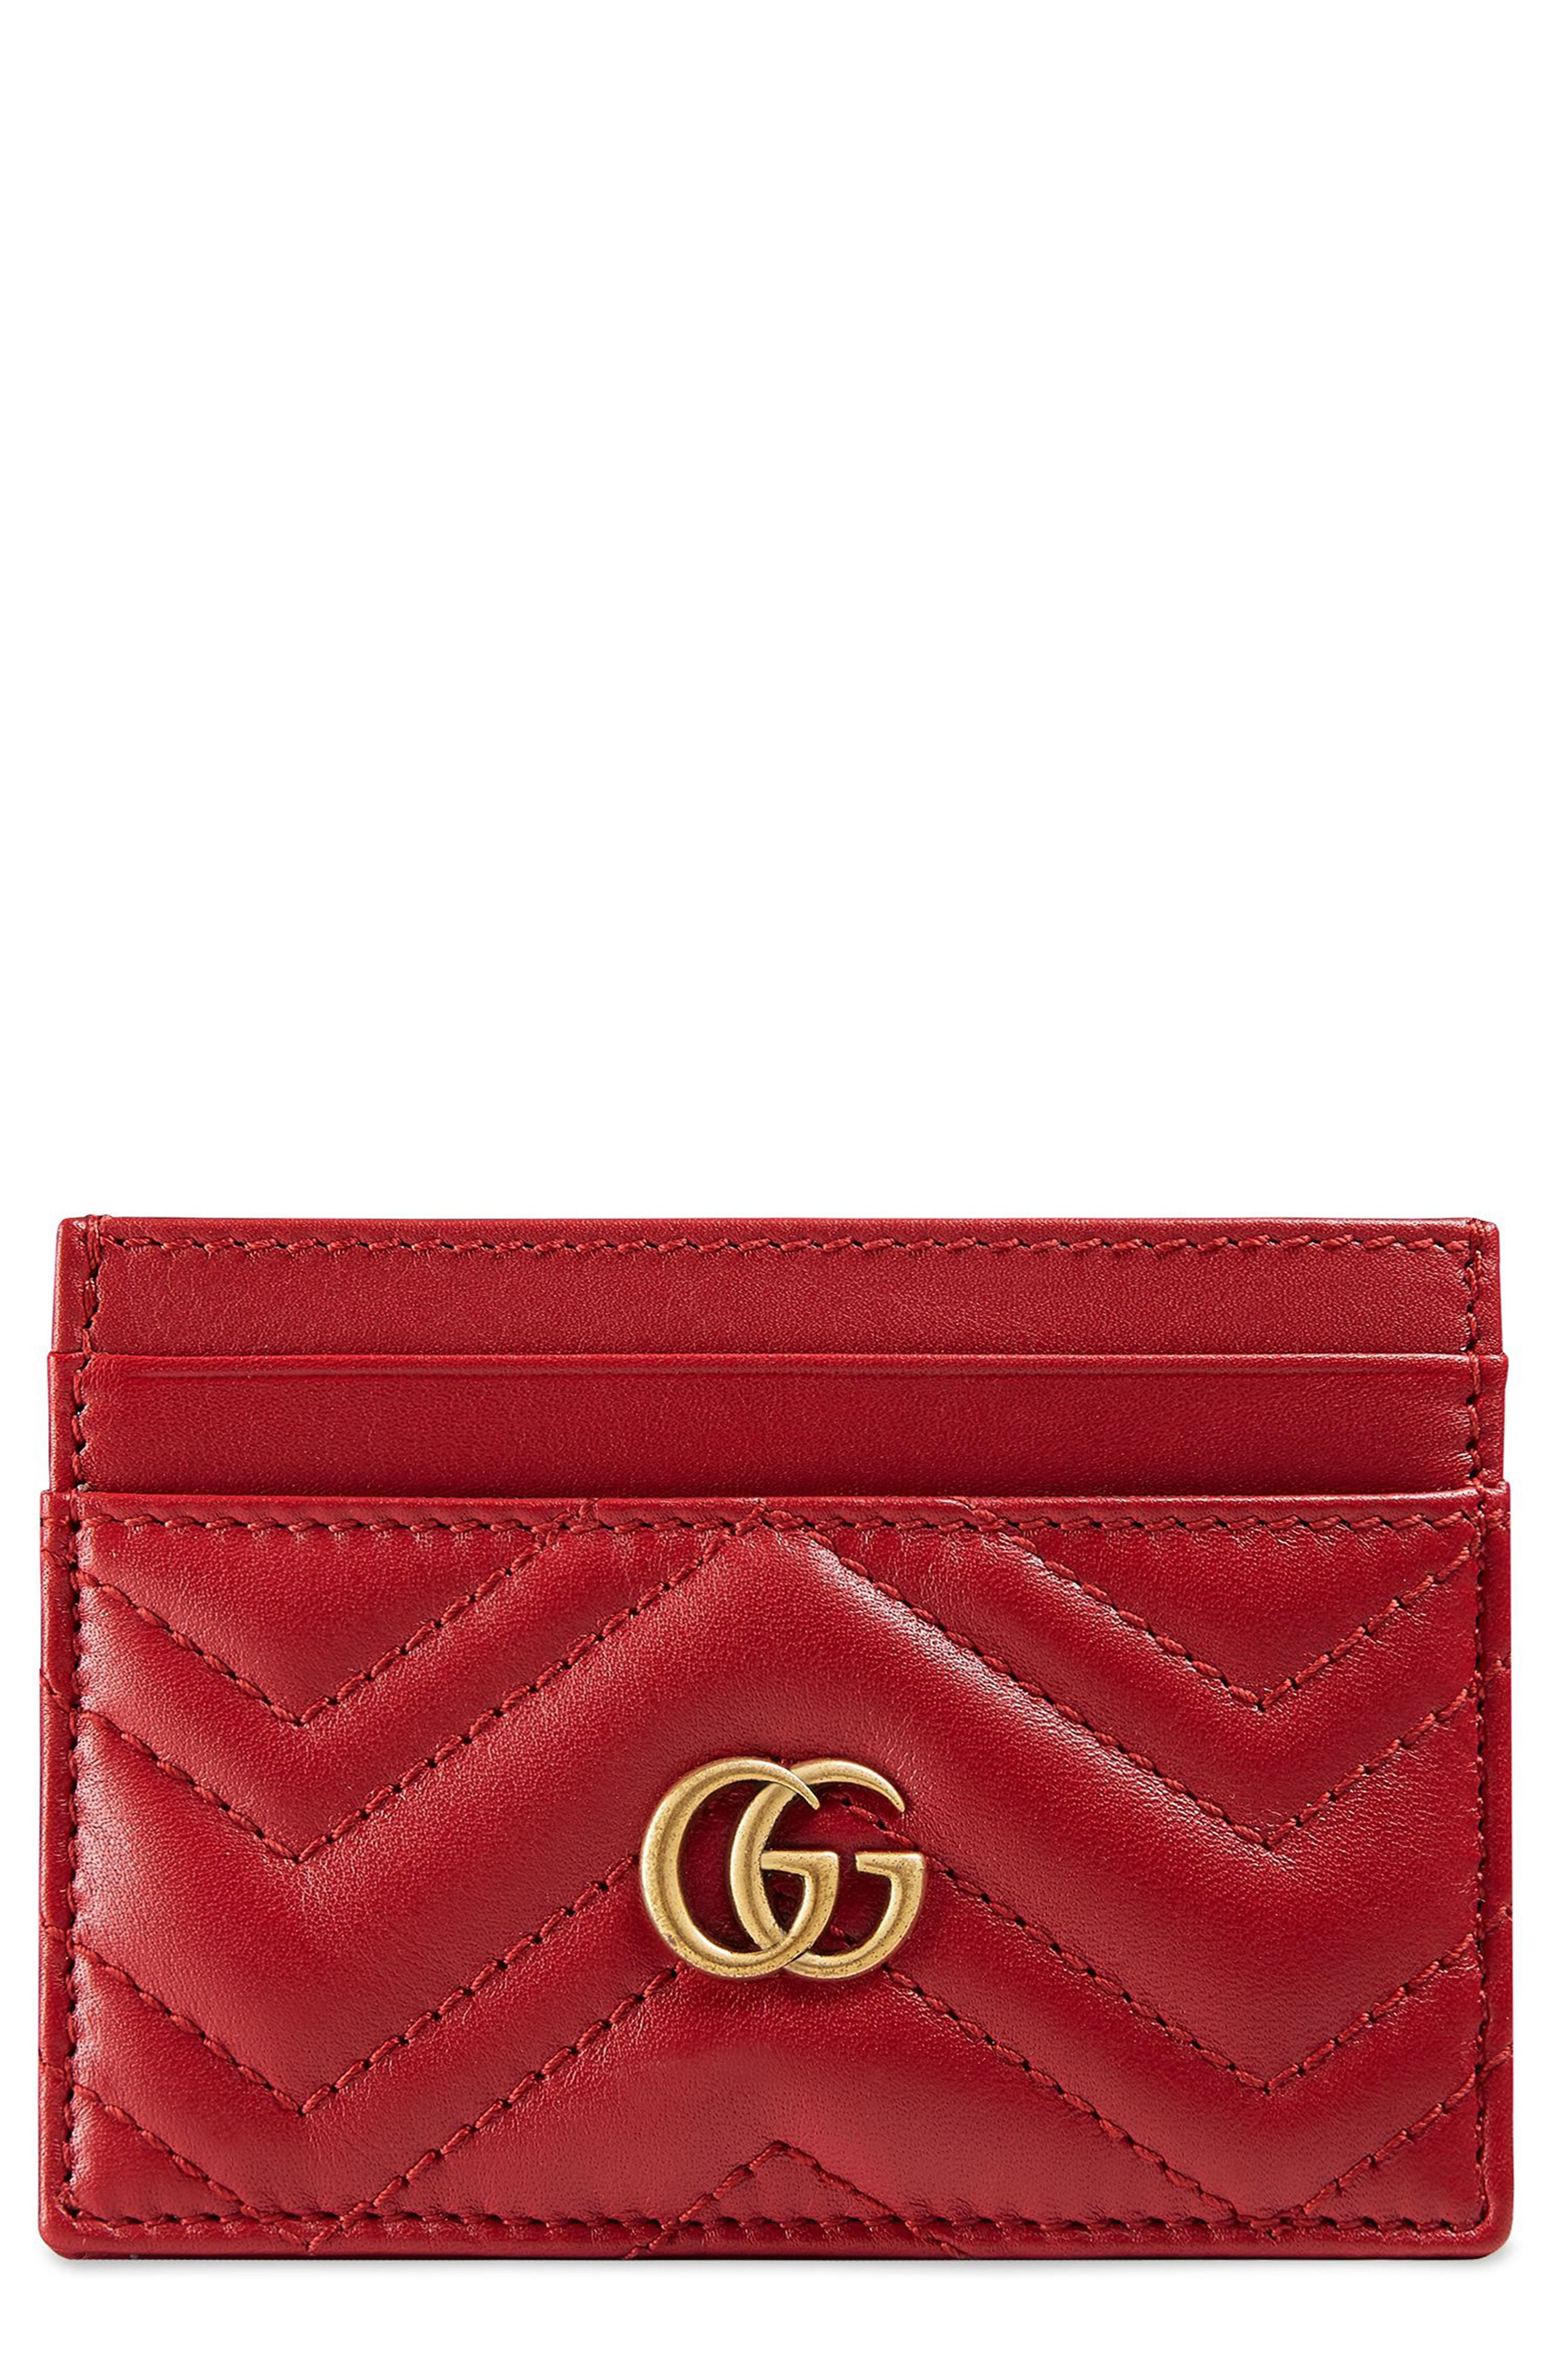 GG Marmont Matelassé Leather Card Case,                         Main,                         color, HIBISCUS RED